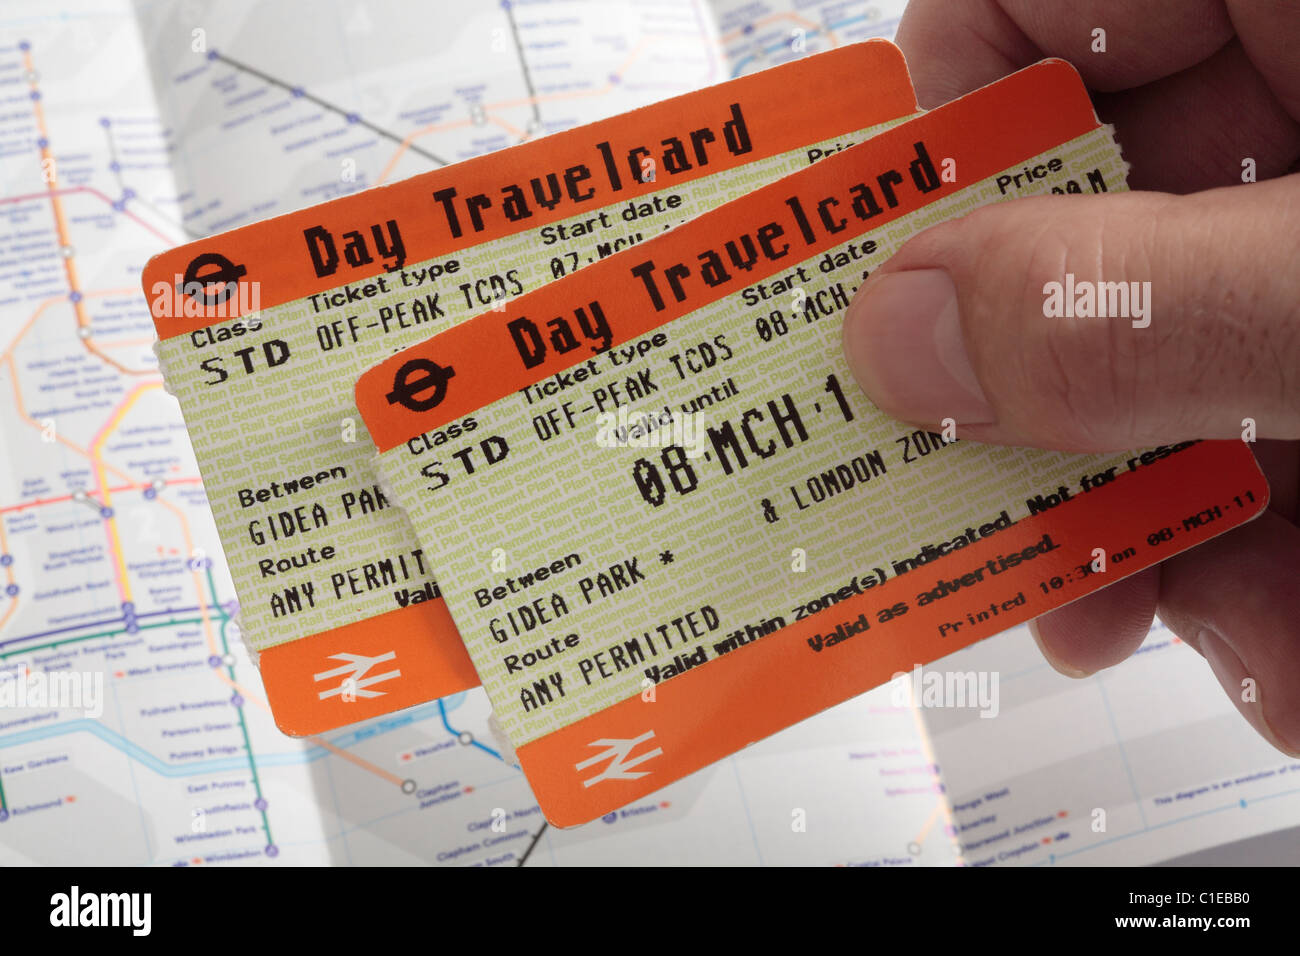 Off-Peak Day Travelcards with underground map in background - Stock Image